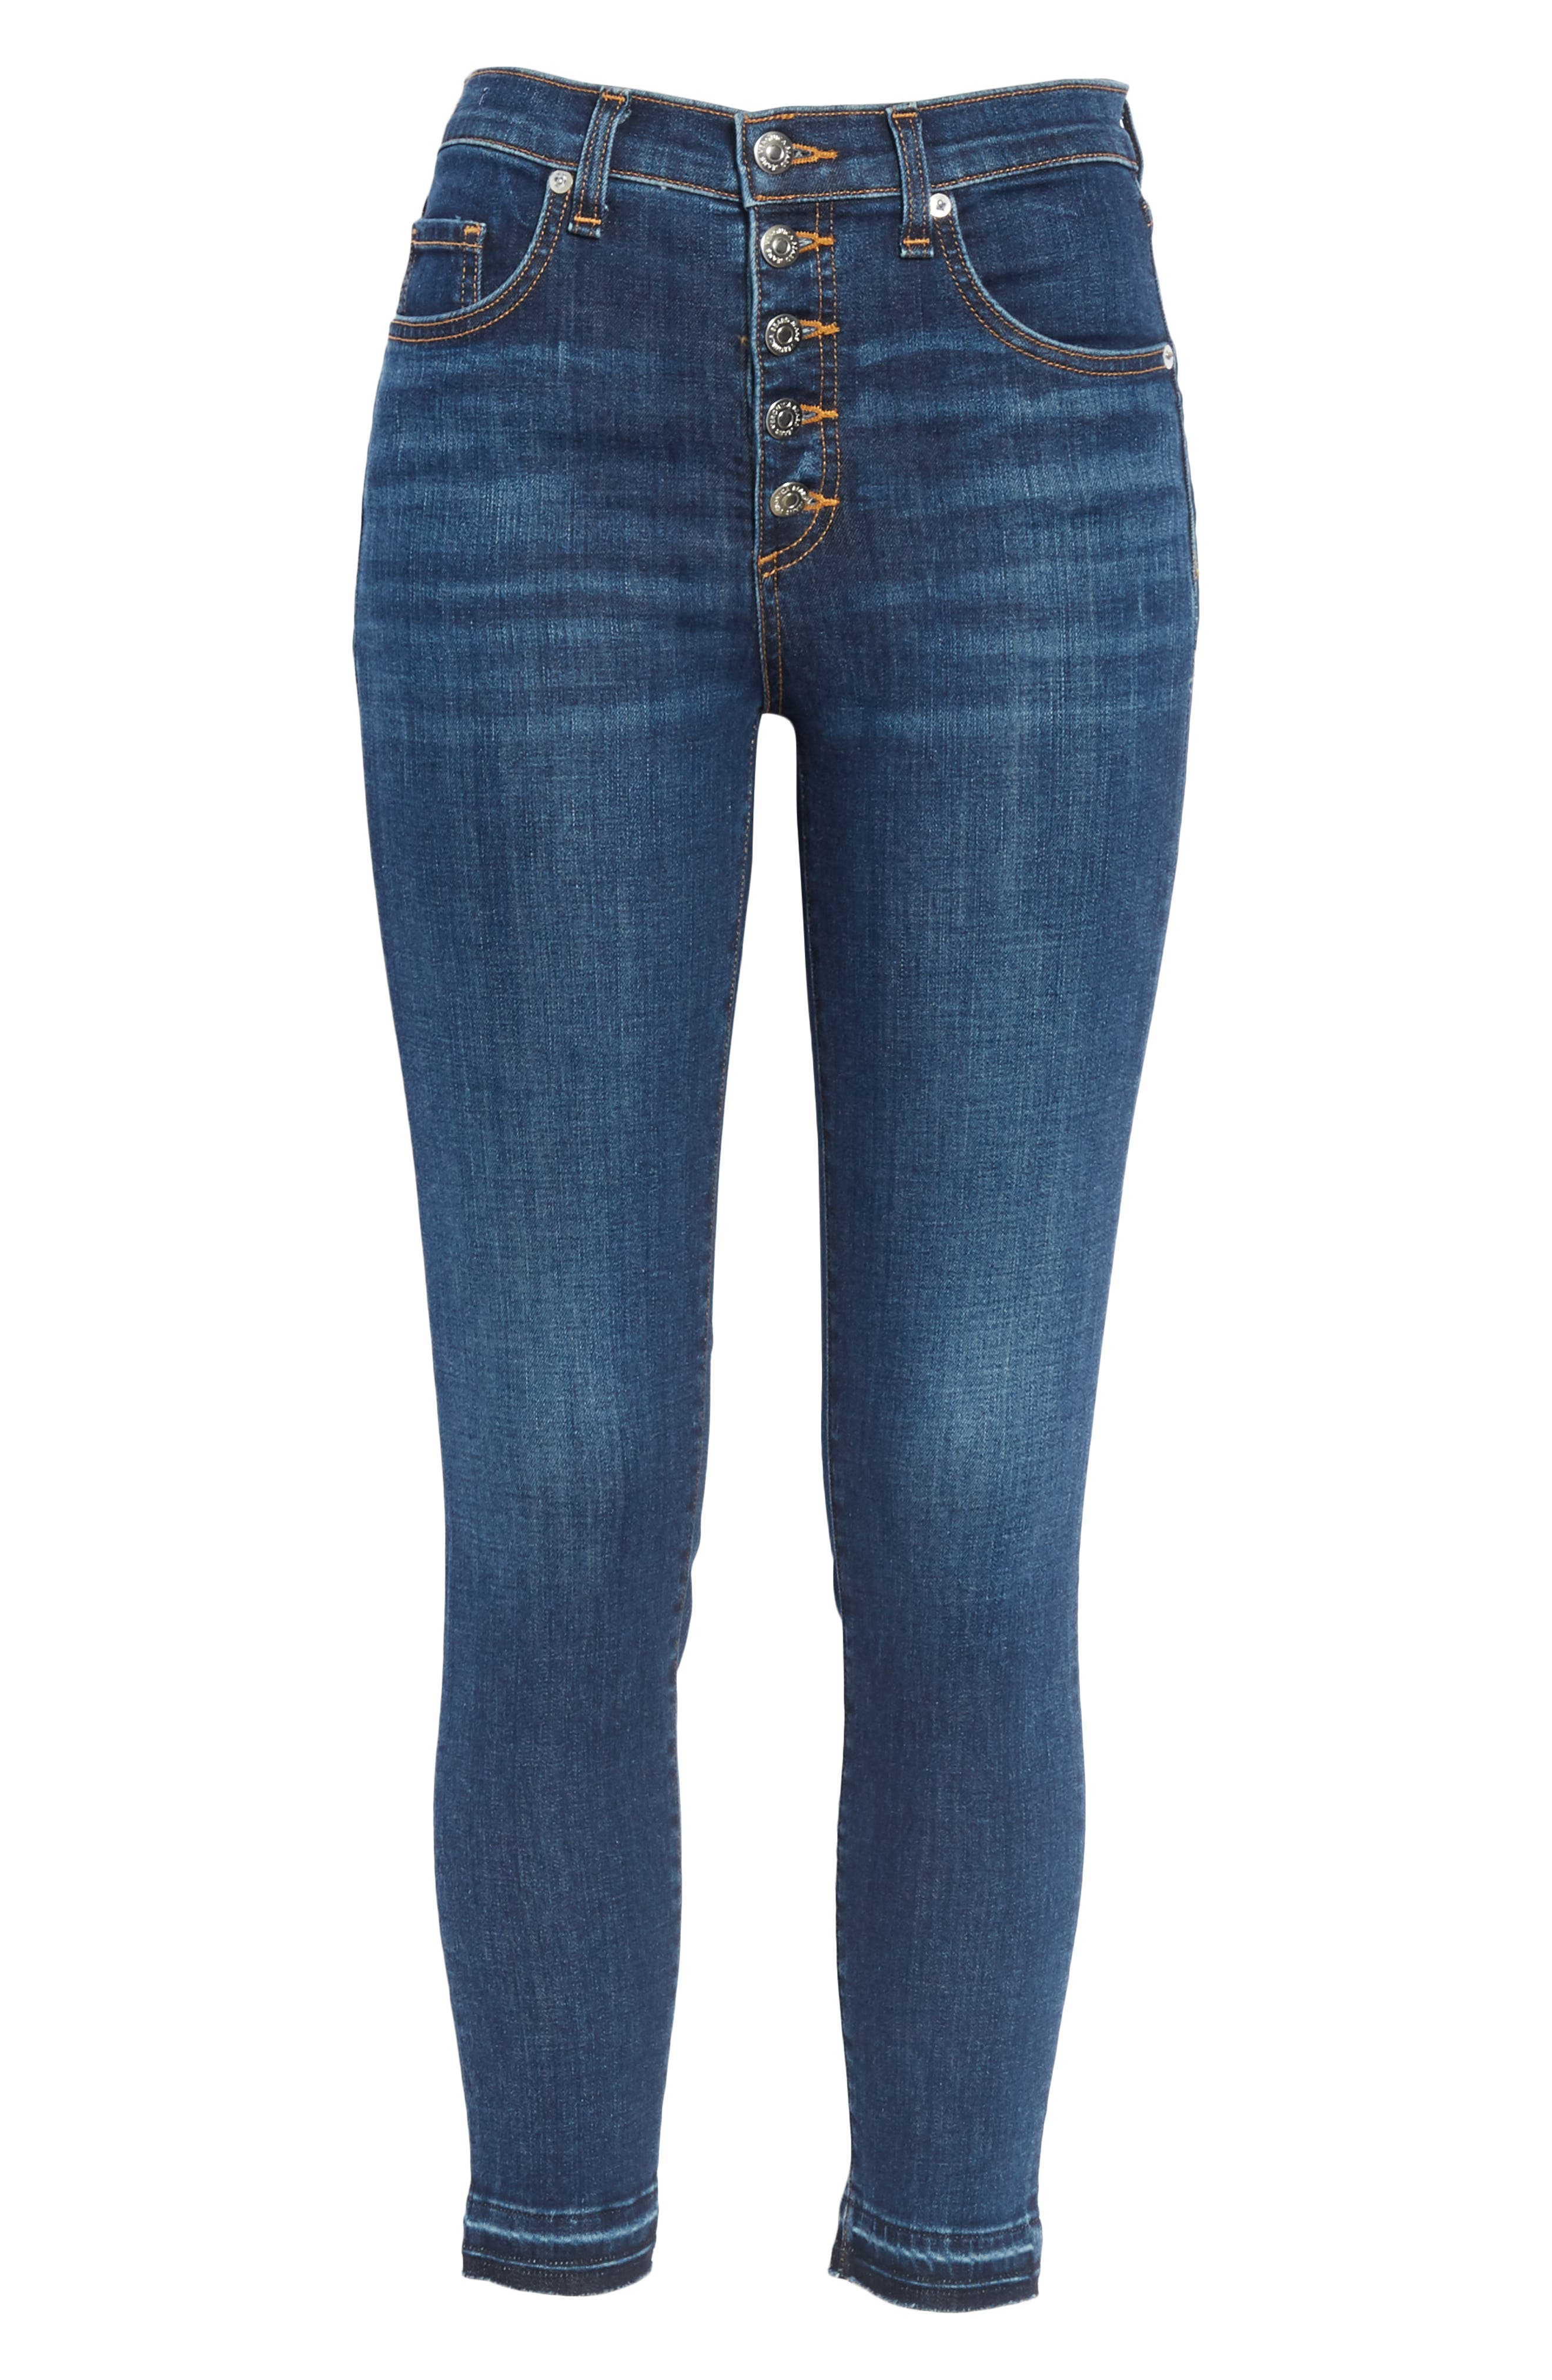 Debbie Frayed Crop Skinny Jeans,                             Alternate thumbnail 6, color,                             BRIGHT BLUE